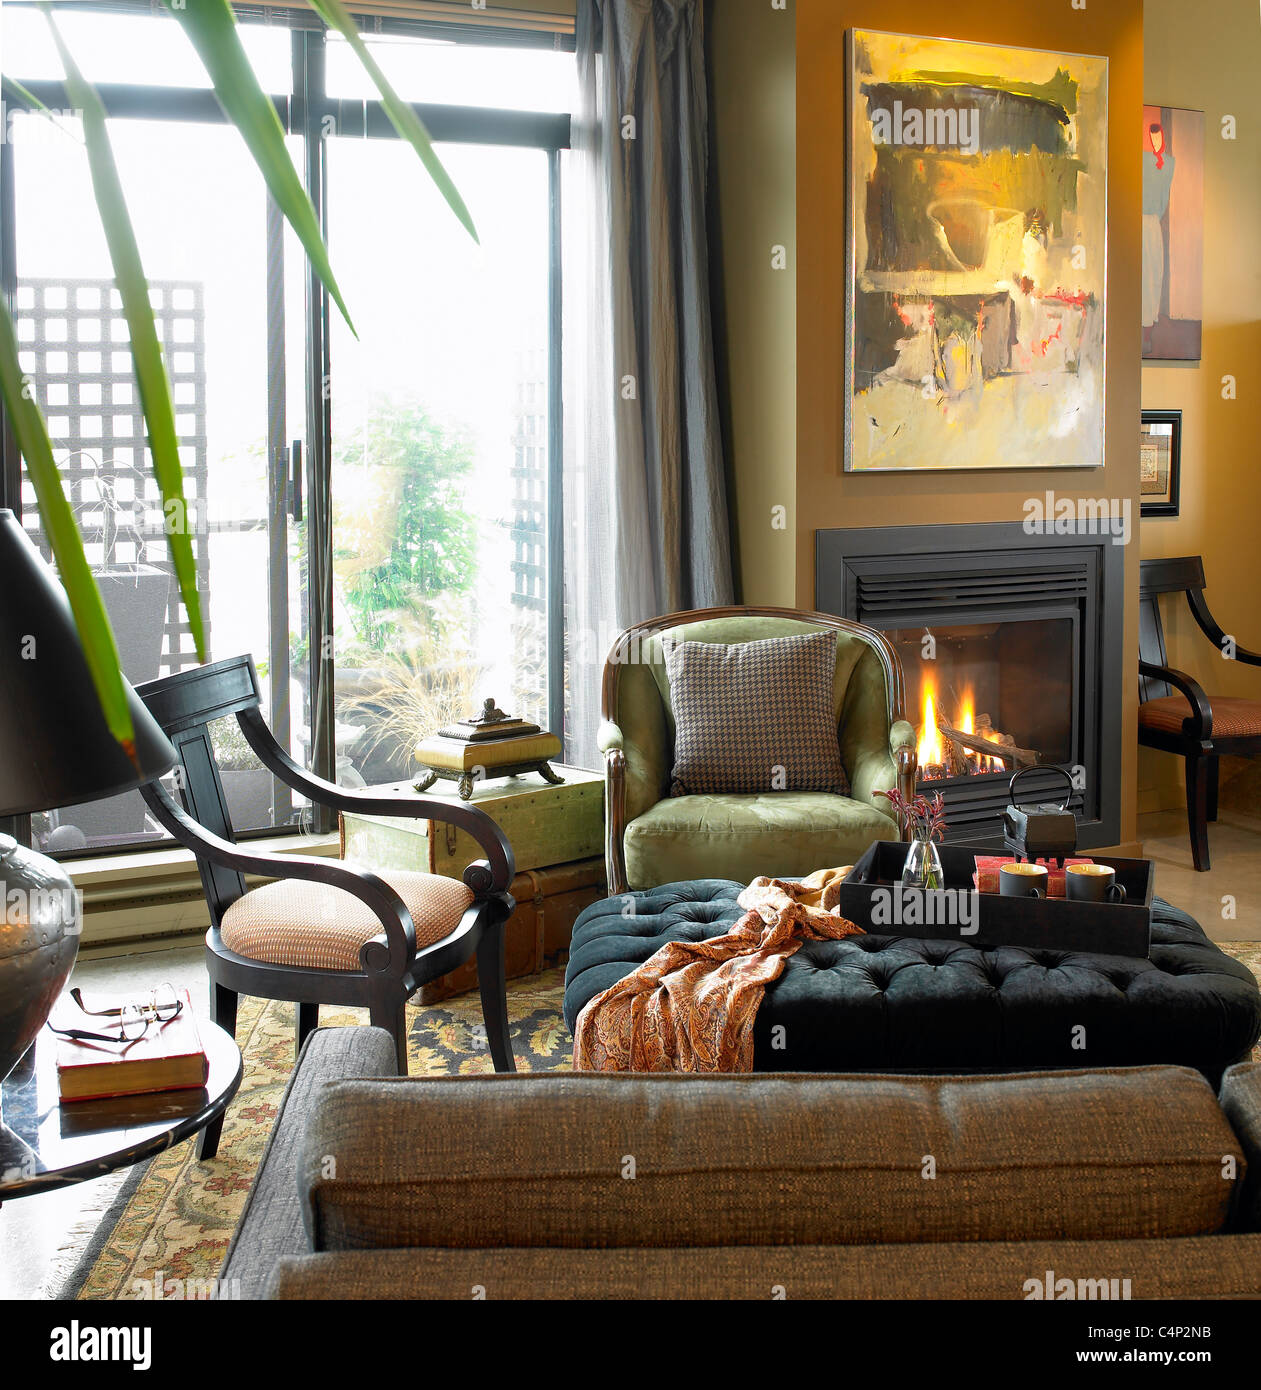 Condo living room with fireplace burning and patio doors open Victoria Vancouver Island B.C. Canada & Condo living room with fireplace burning and patio doors open Stock ...